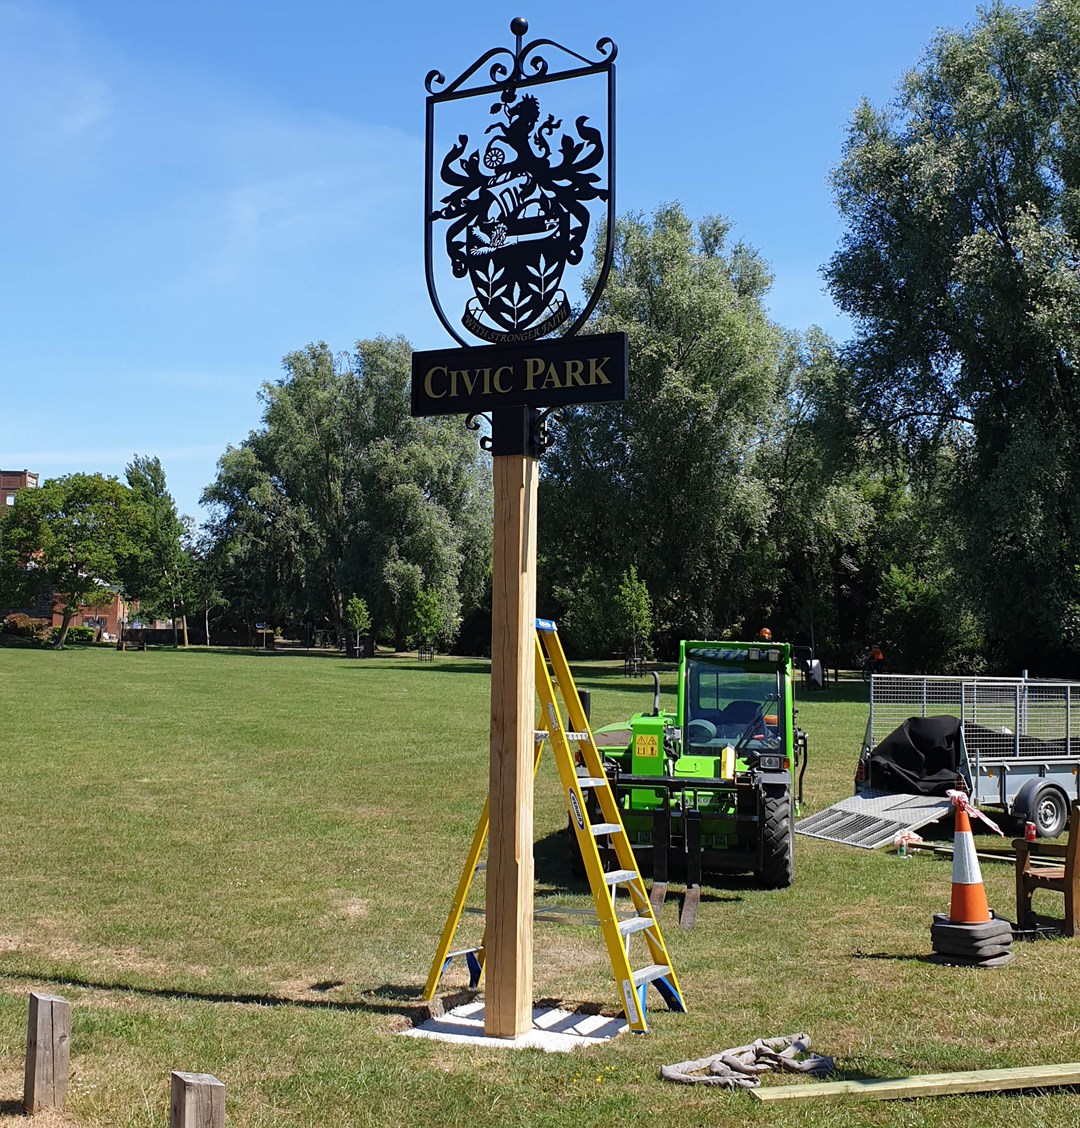 A photo of the completed Civic Park signage